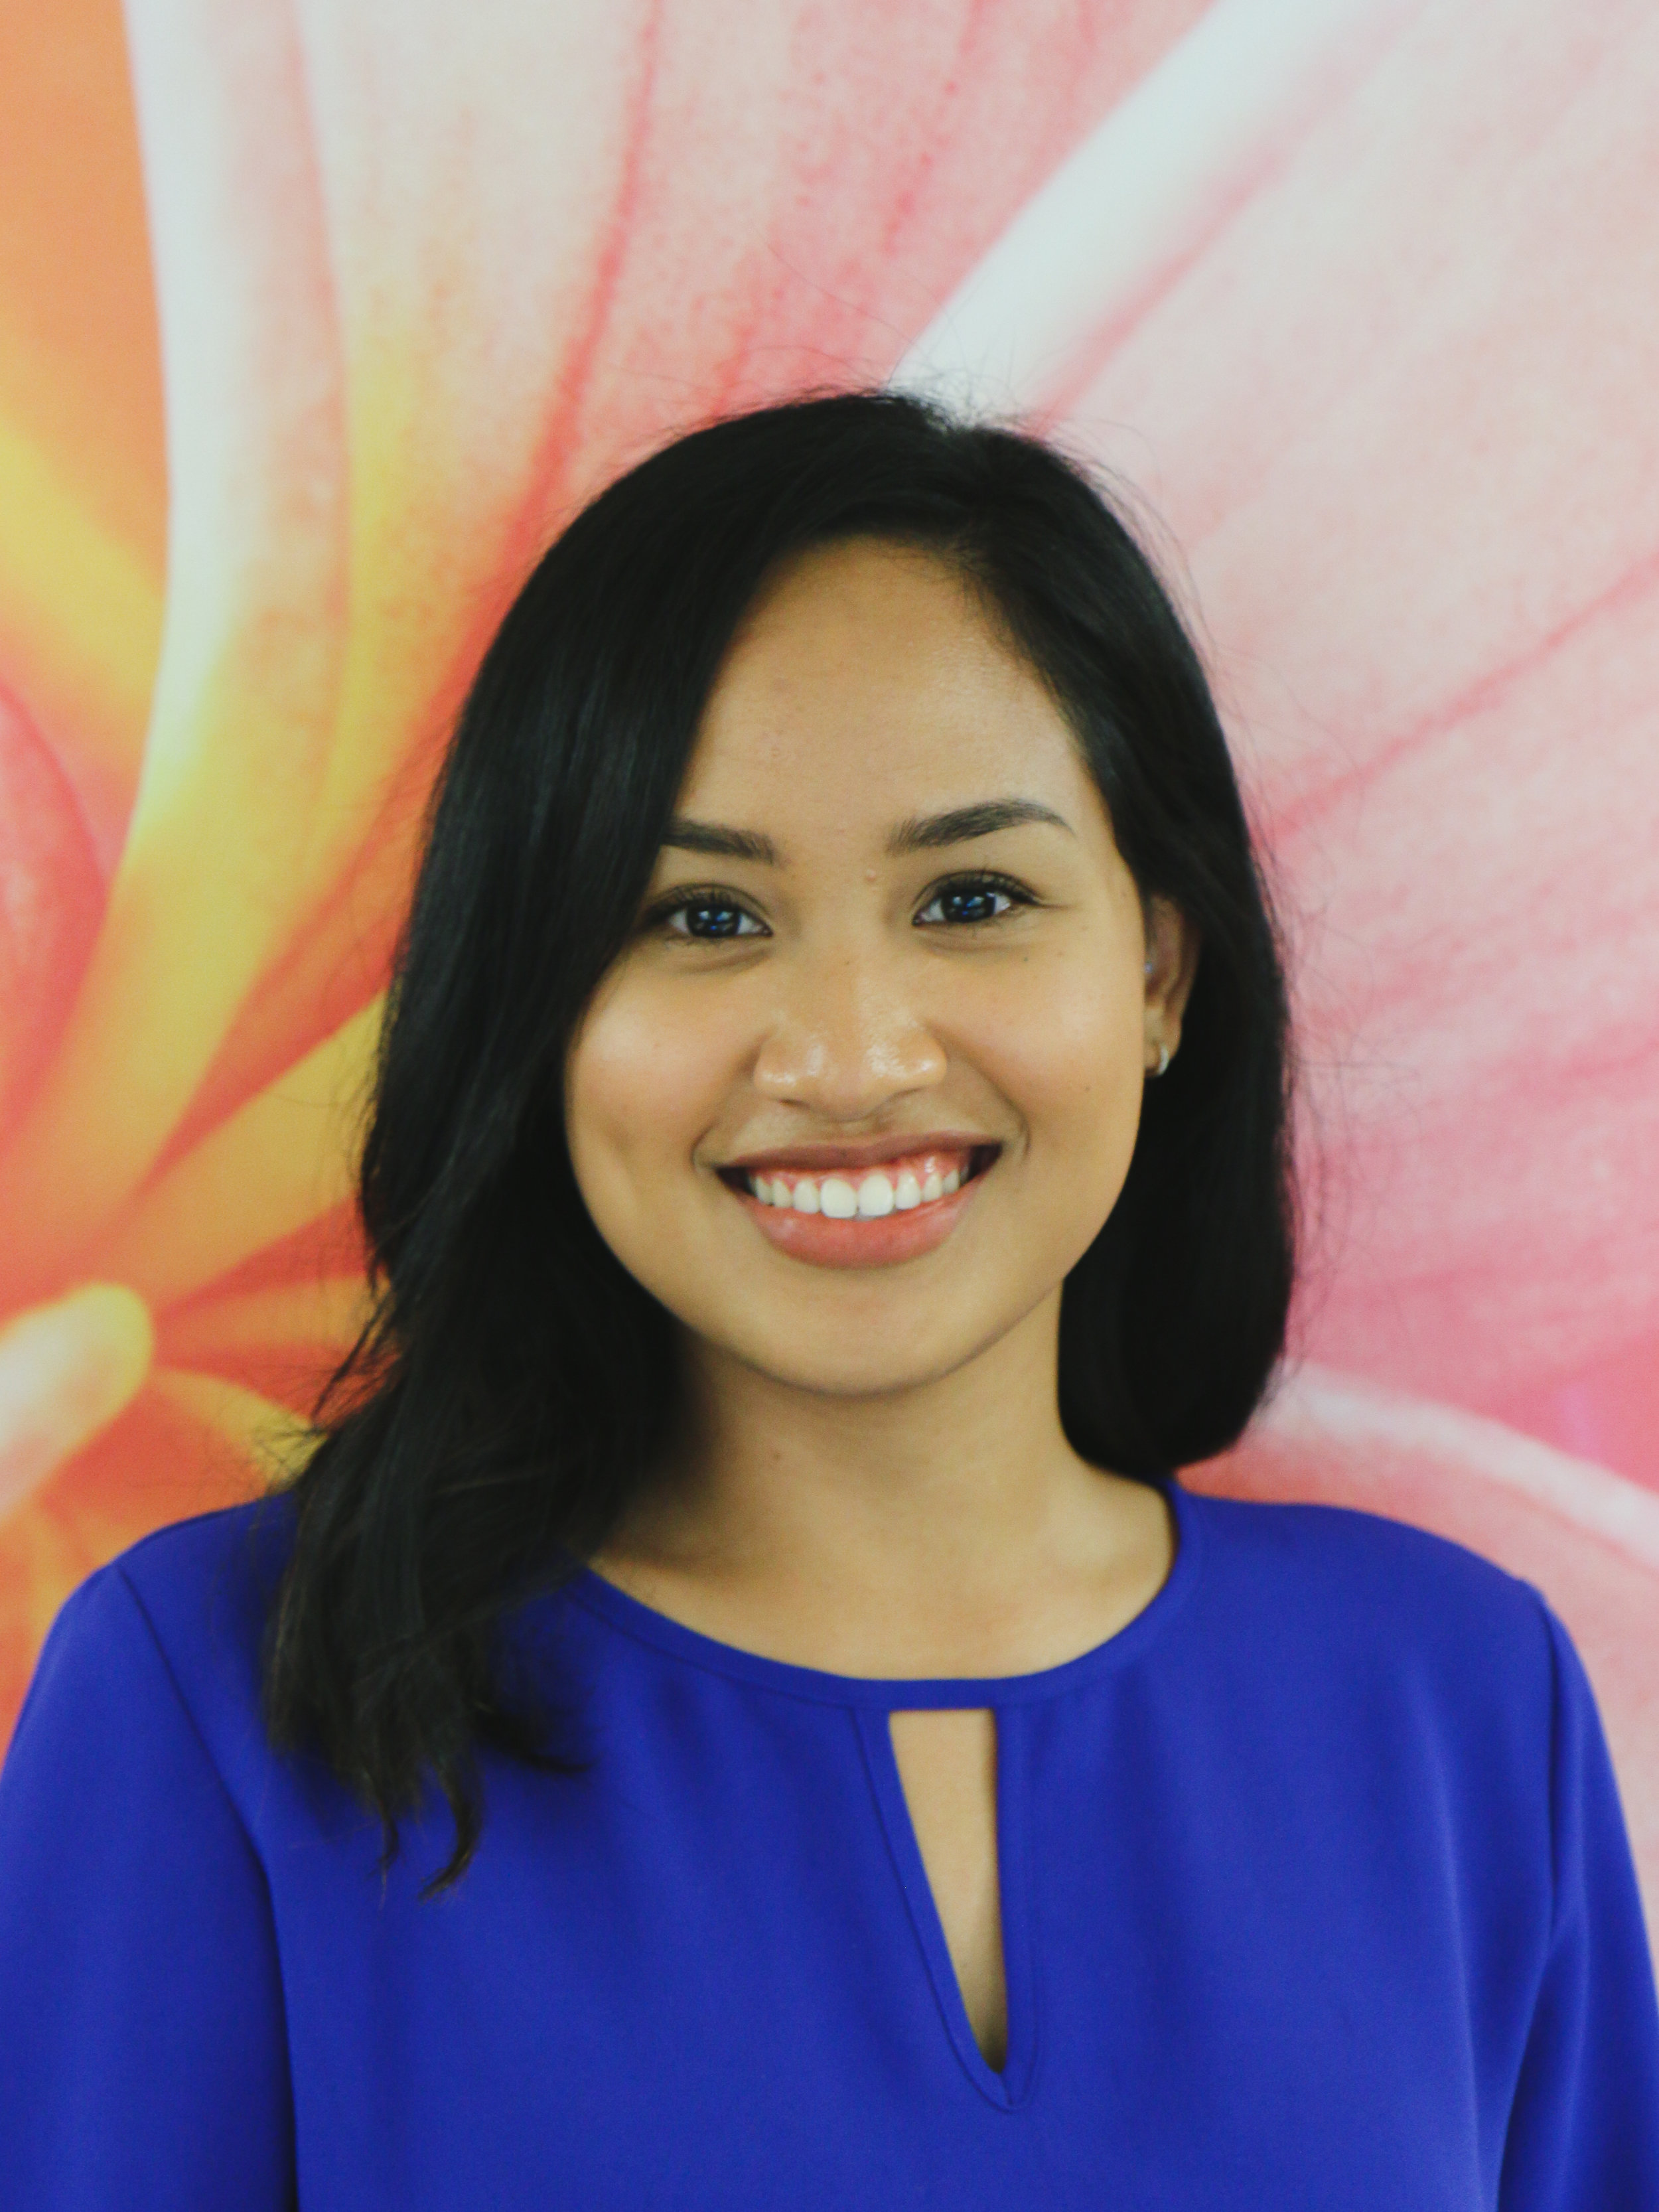 PUBLIC SERVICE CO-CHAIR    Lauren Caliwag   Digital Account Coordinator Becker Communications, Inc.    What would you like to see more of in Advertising in Hawaii?   Sustainability advertising - campaigns and ads that promote social, economic, and environmental benefits through local products, services or actions.